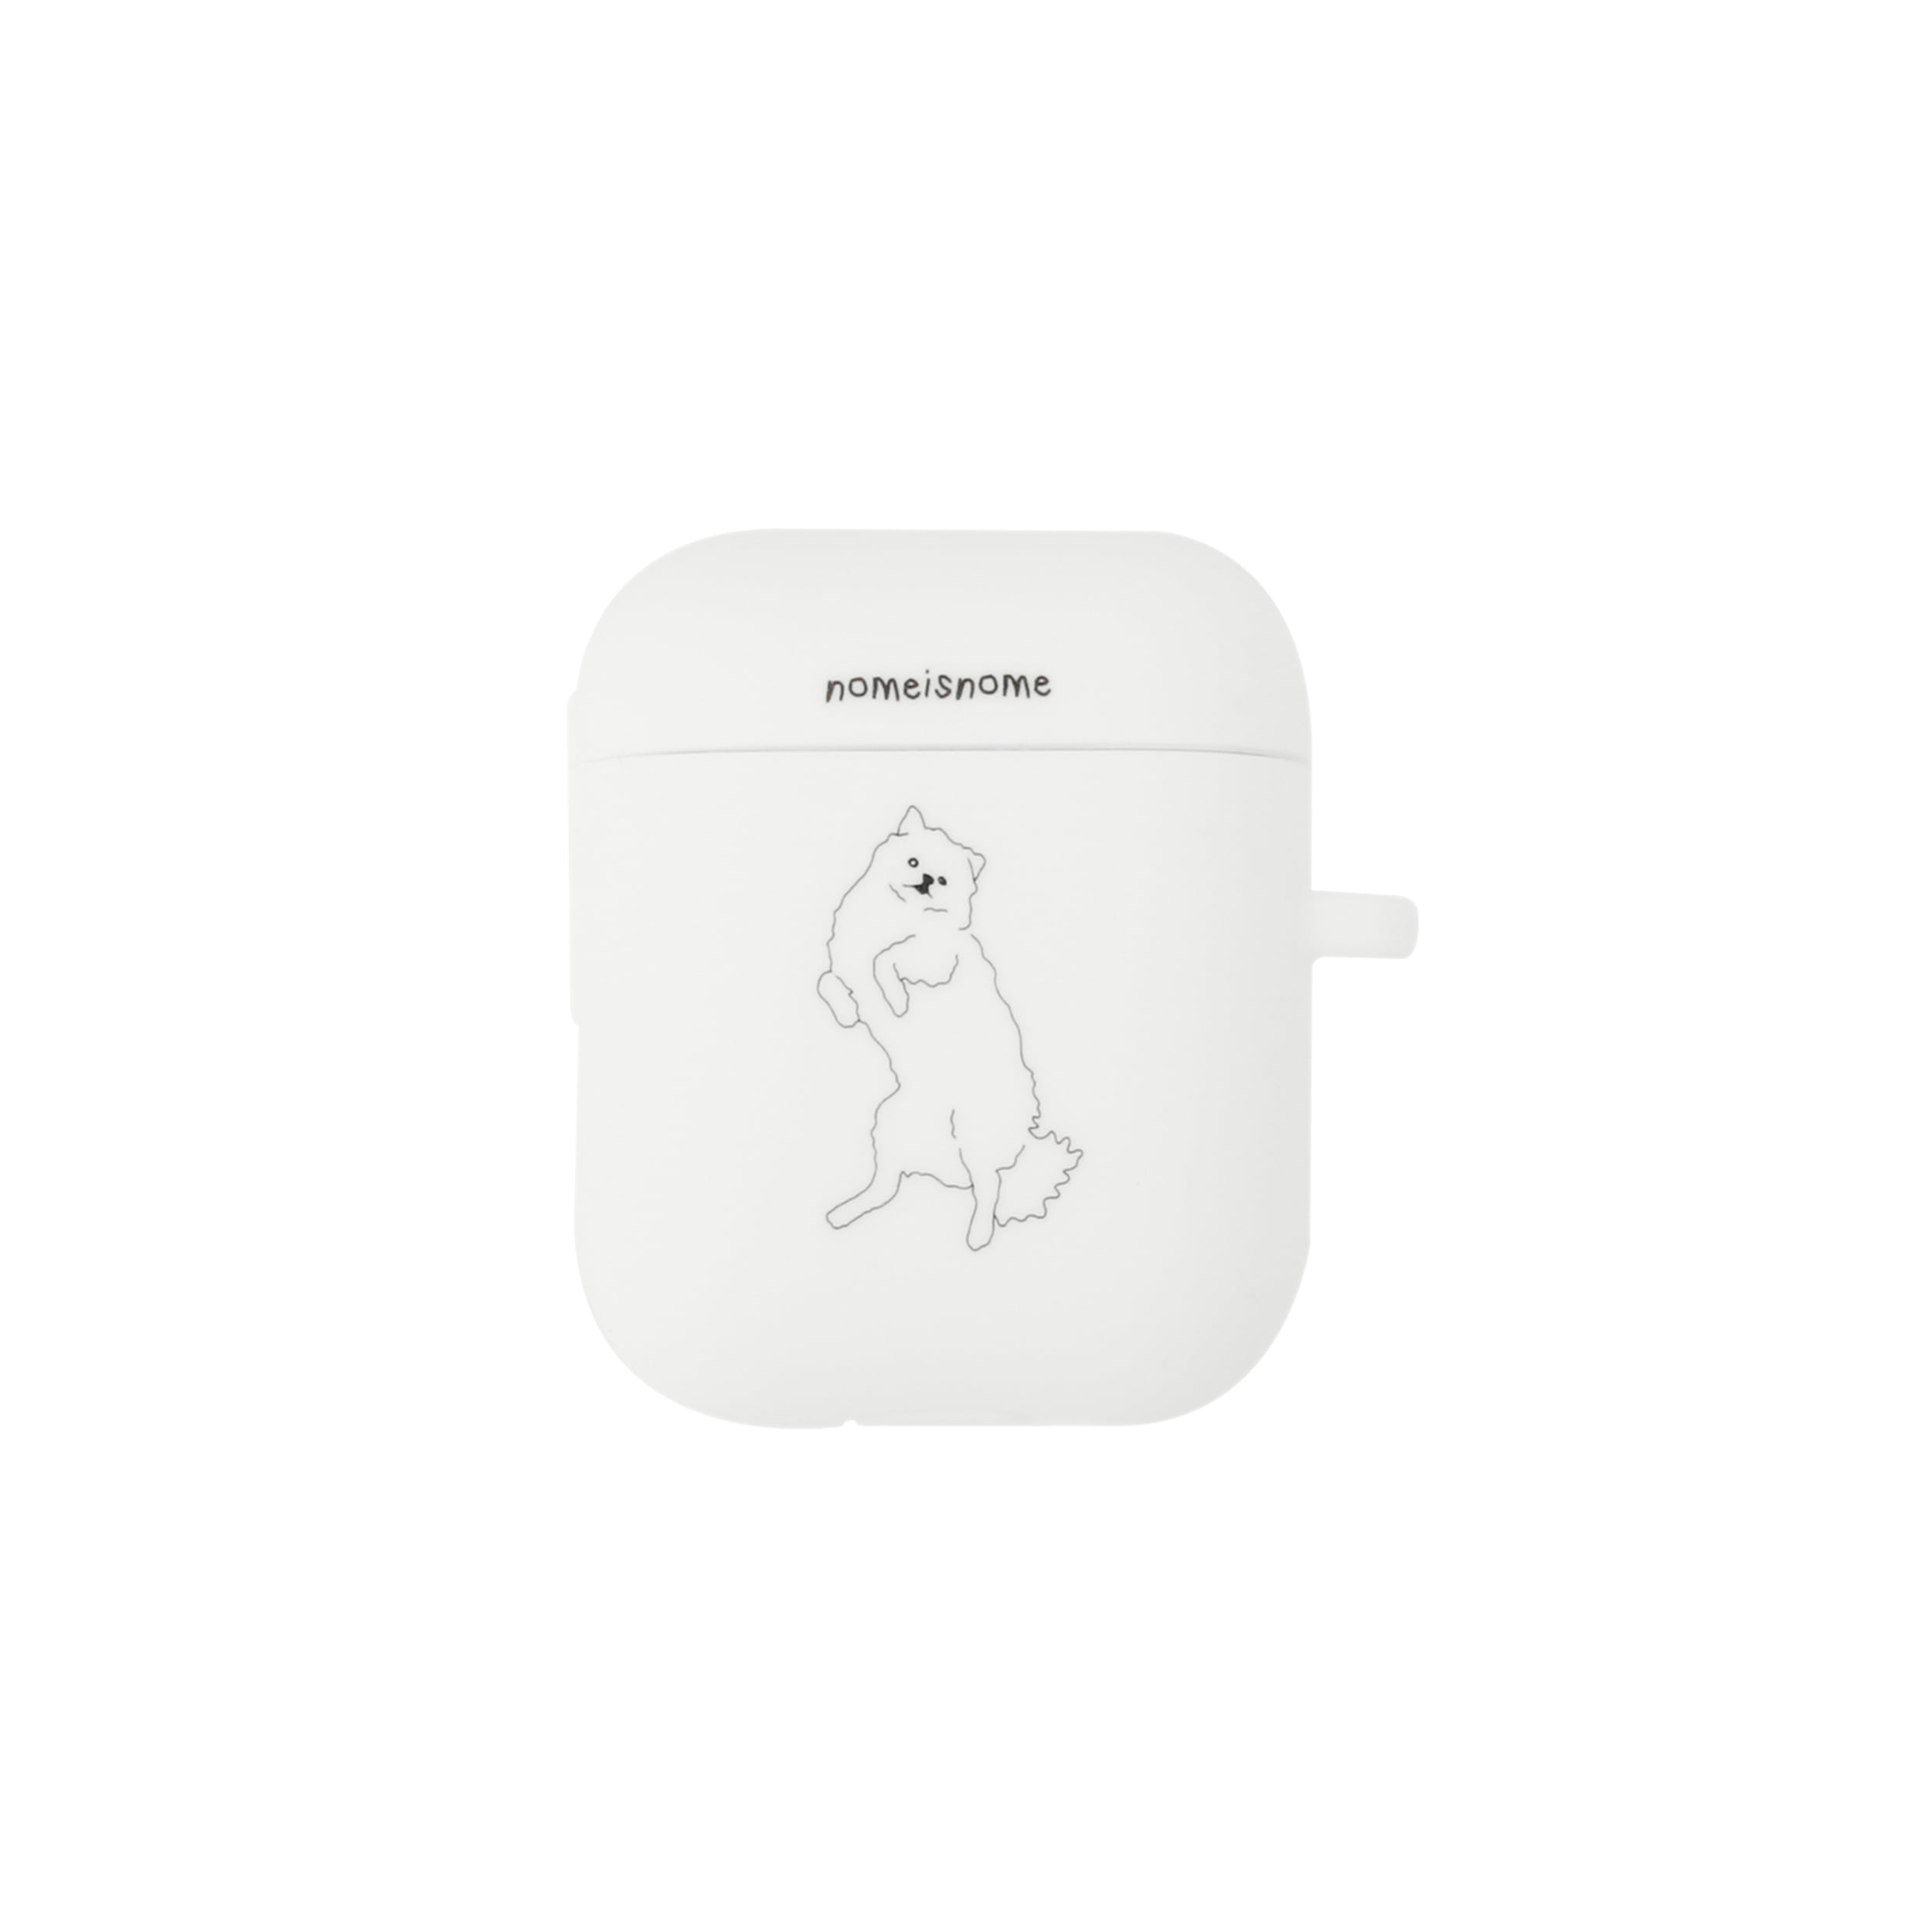 fogbownome white no.1 / airpods case